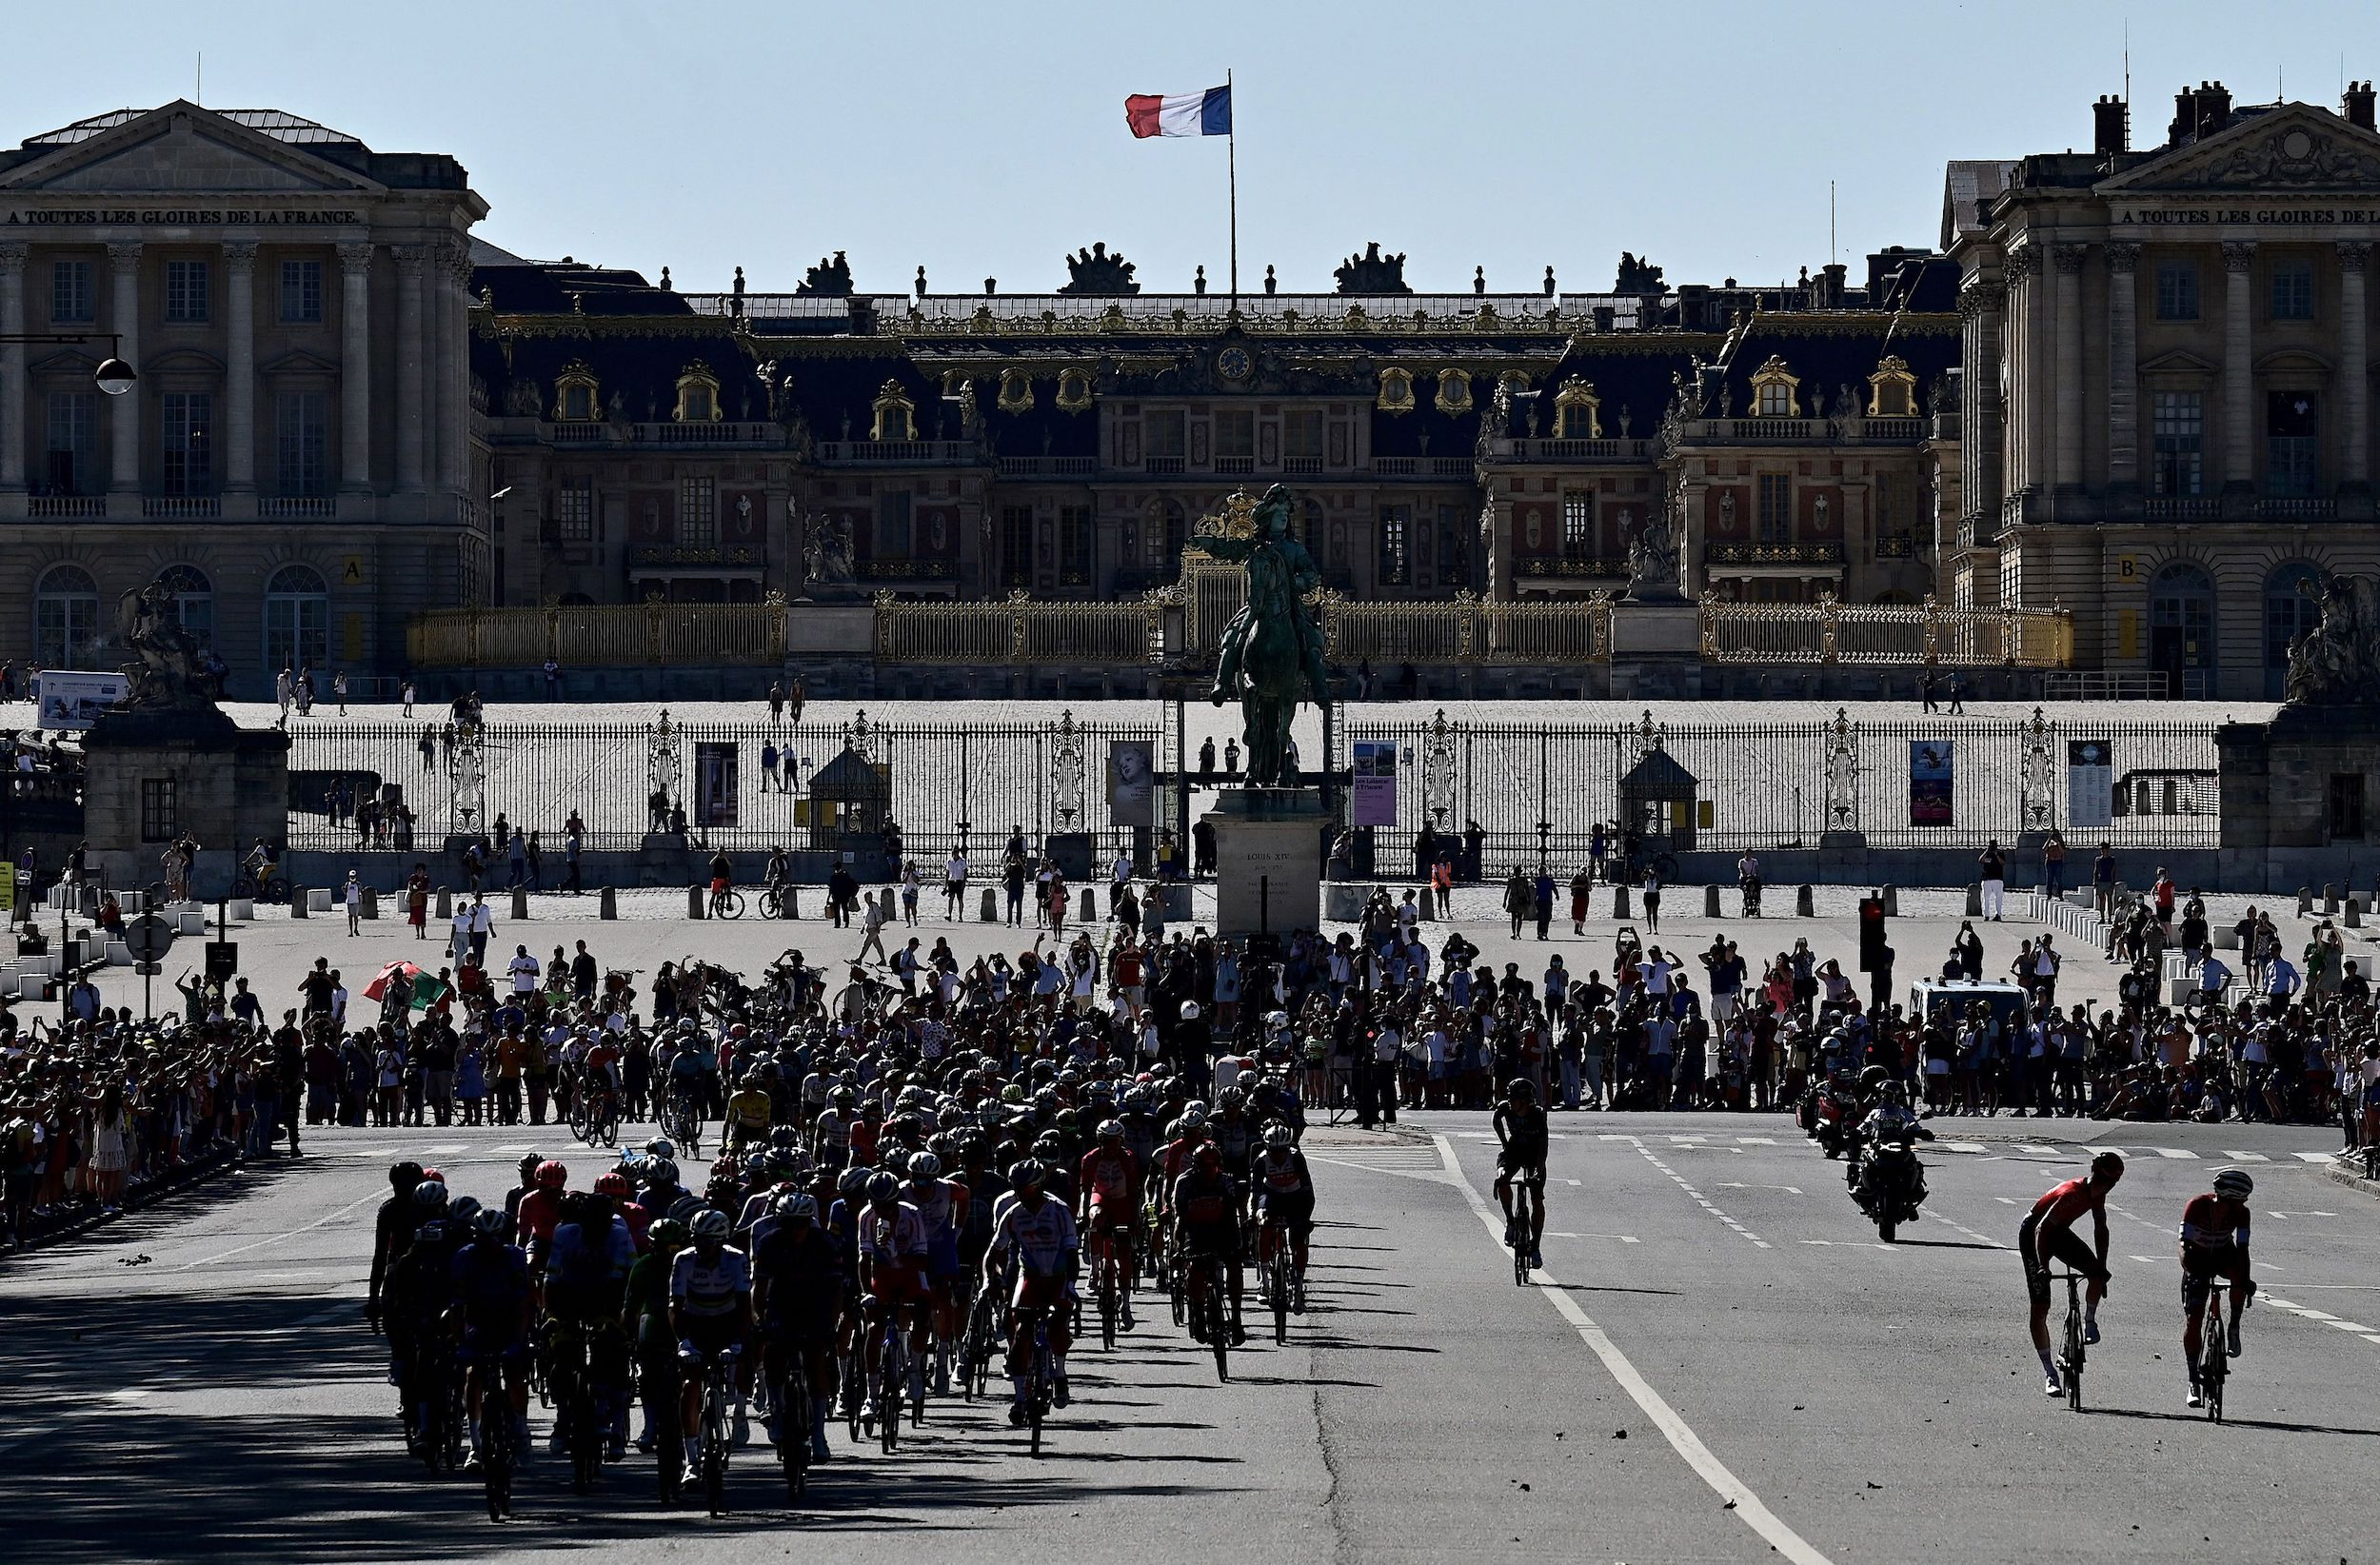 The peloton in front of the palace of Versailles